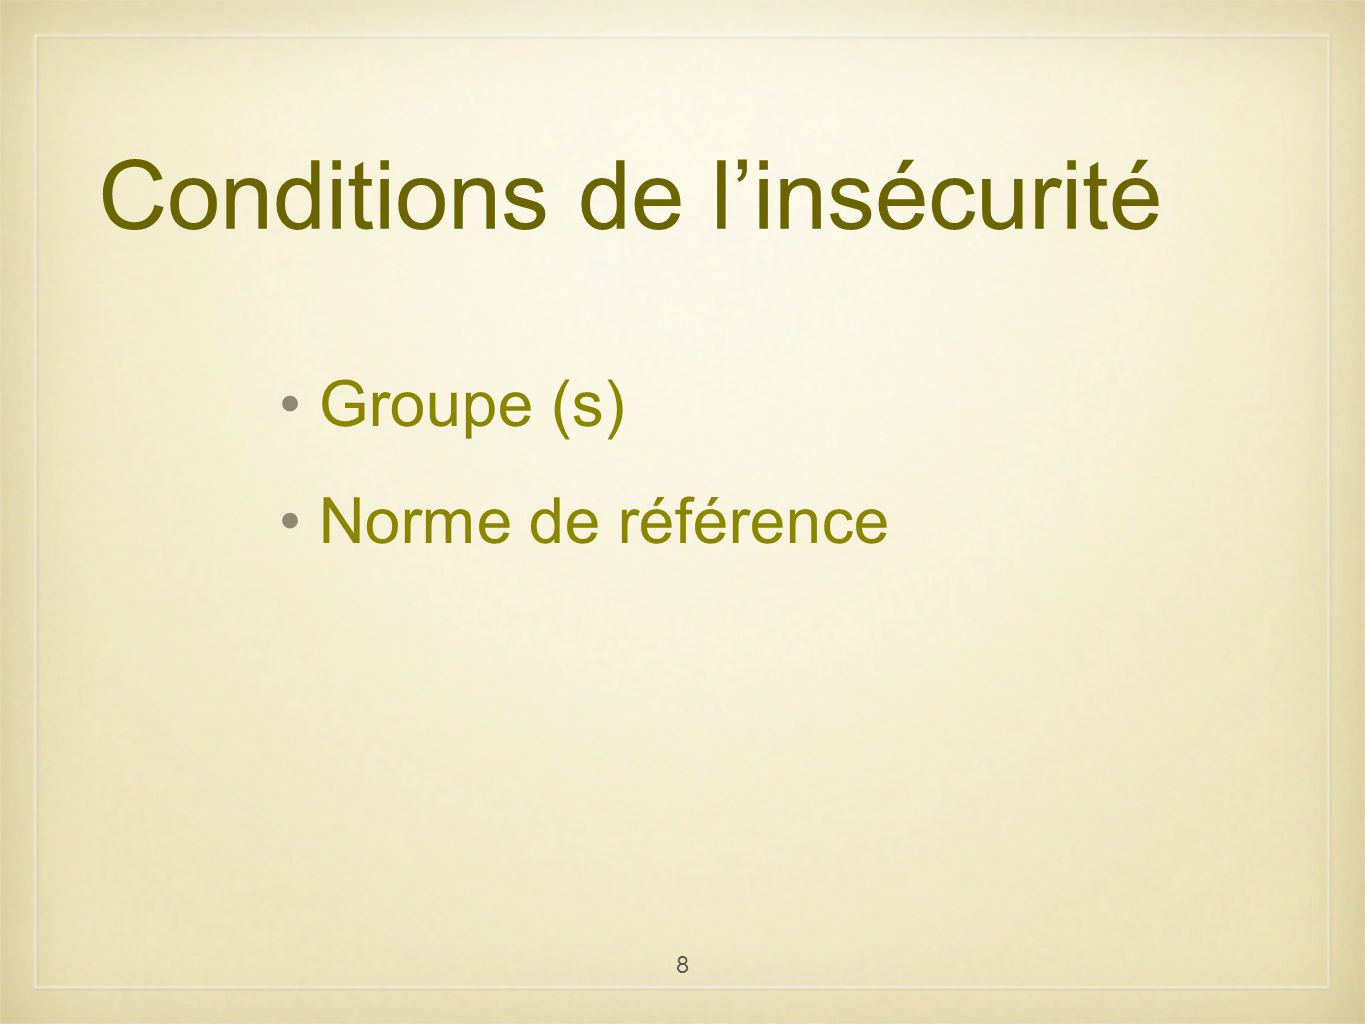 Conditions de l'insécurité